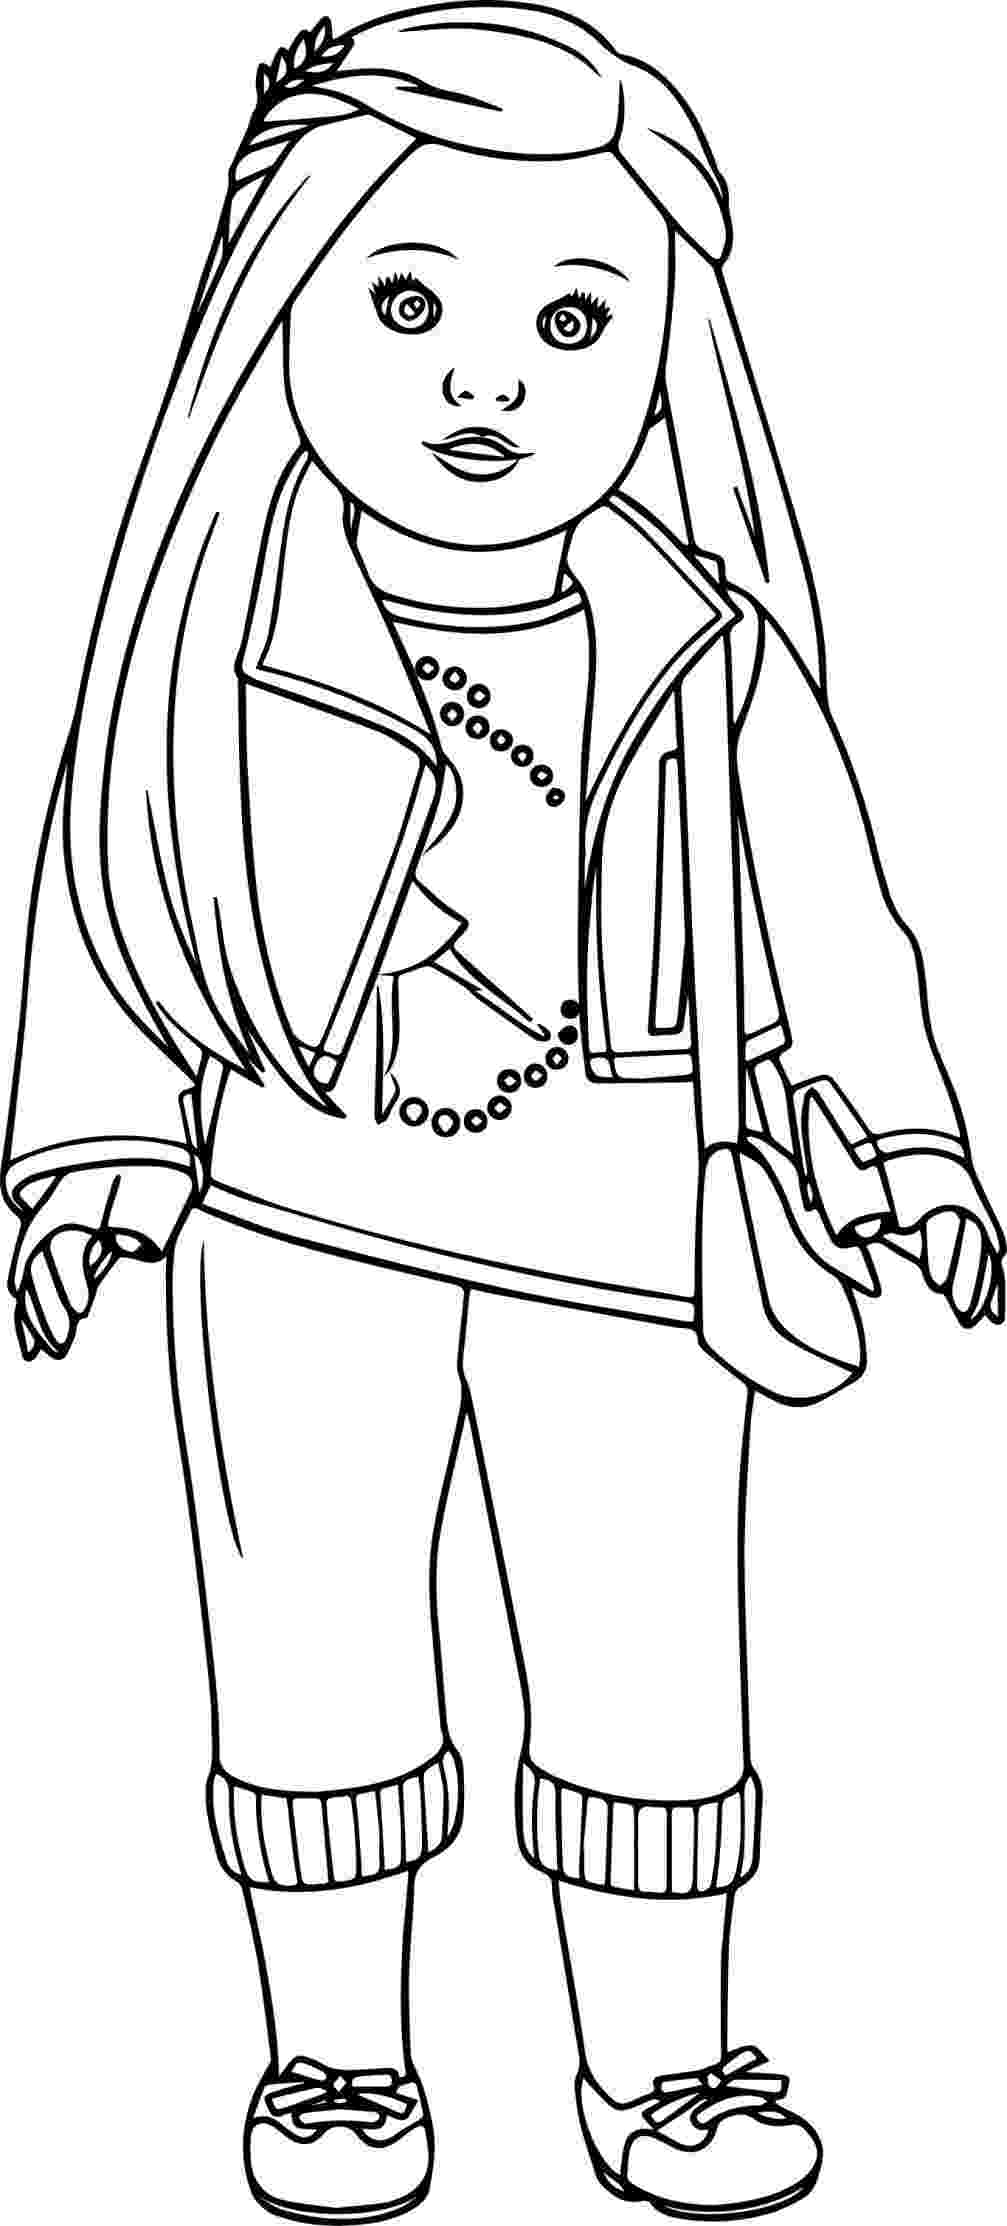 american girl coloring page american girl dolls coloring page truly me american girl coloring page